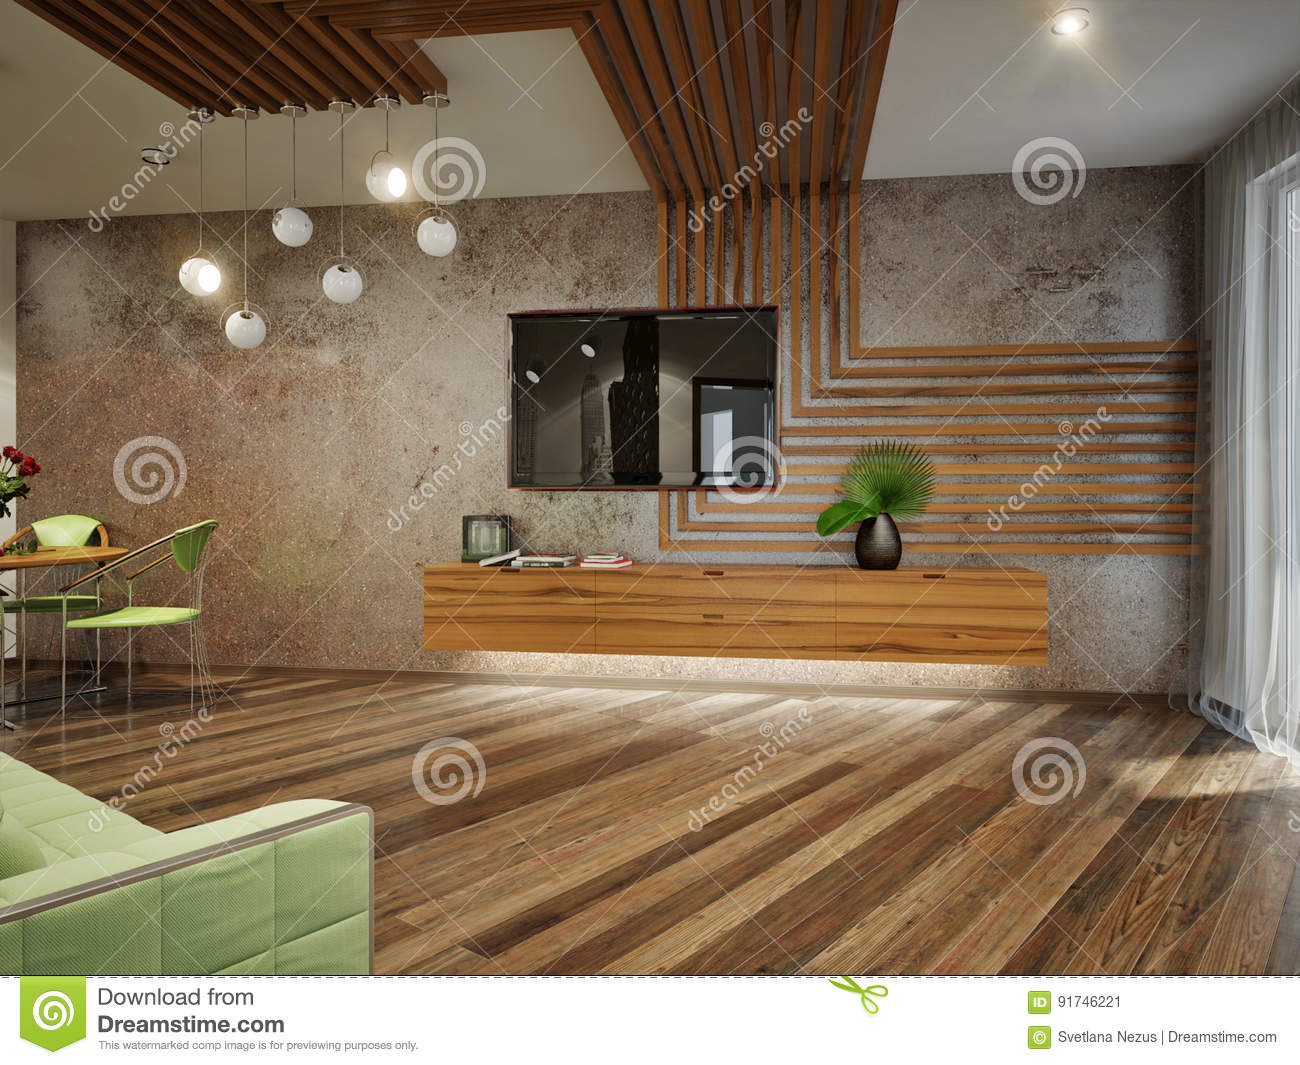 Modern urban contemporary living room interior design stock illustration illustration of Contemporary urban living room